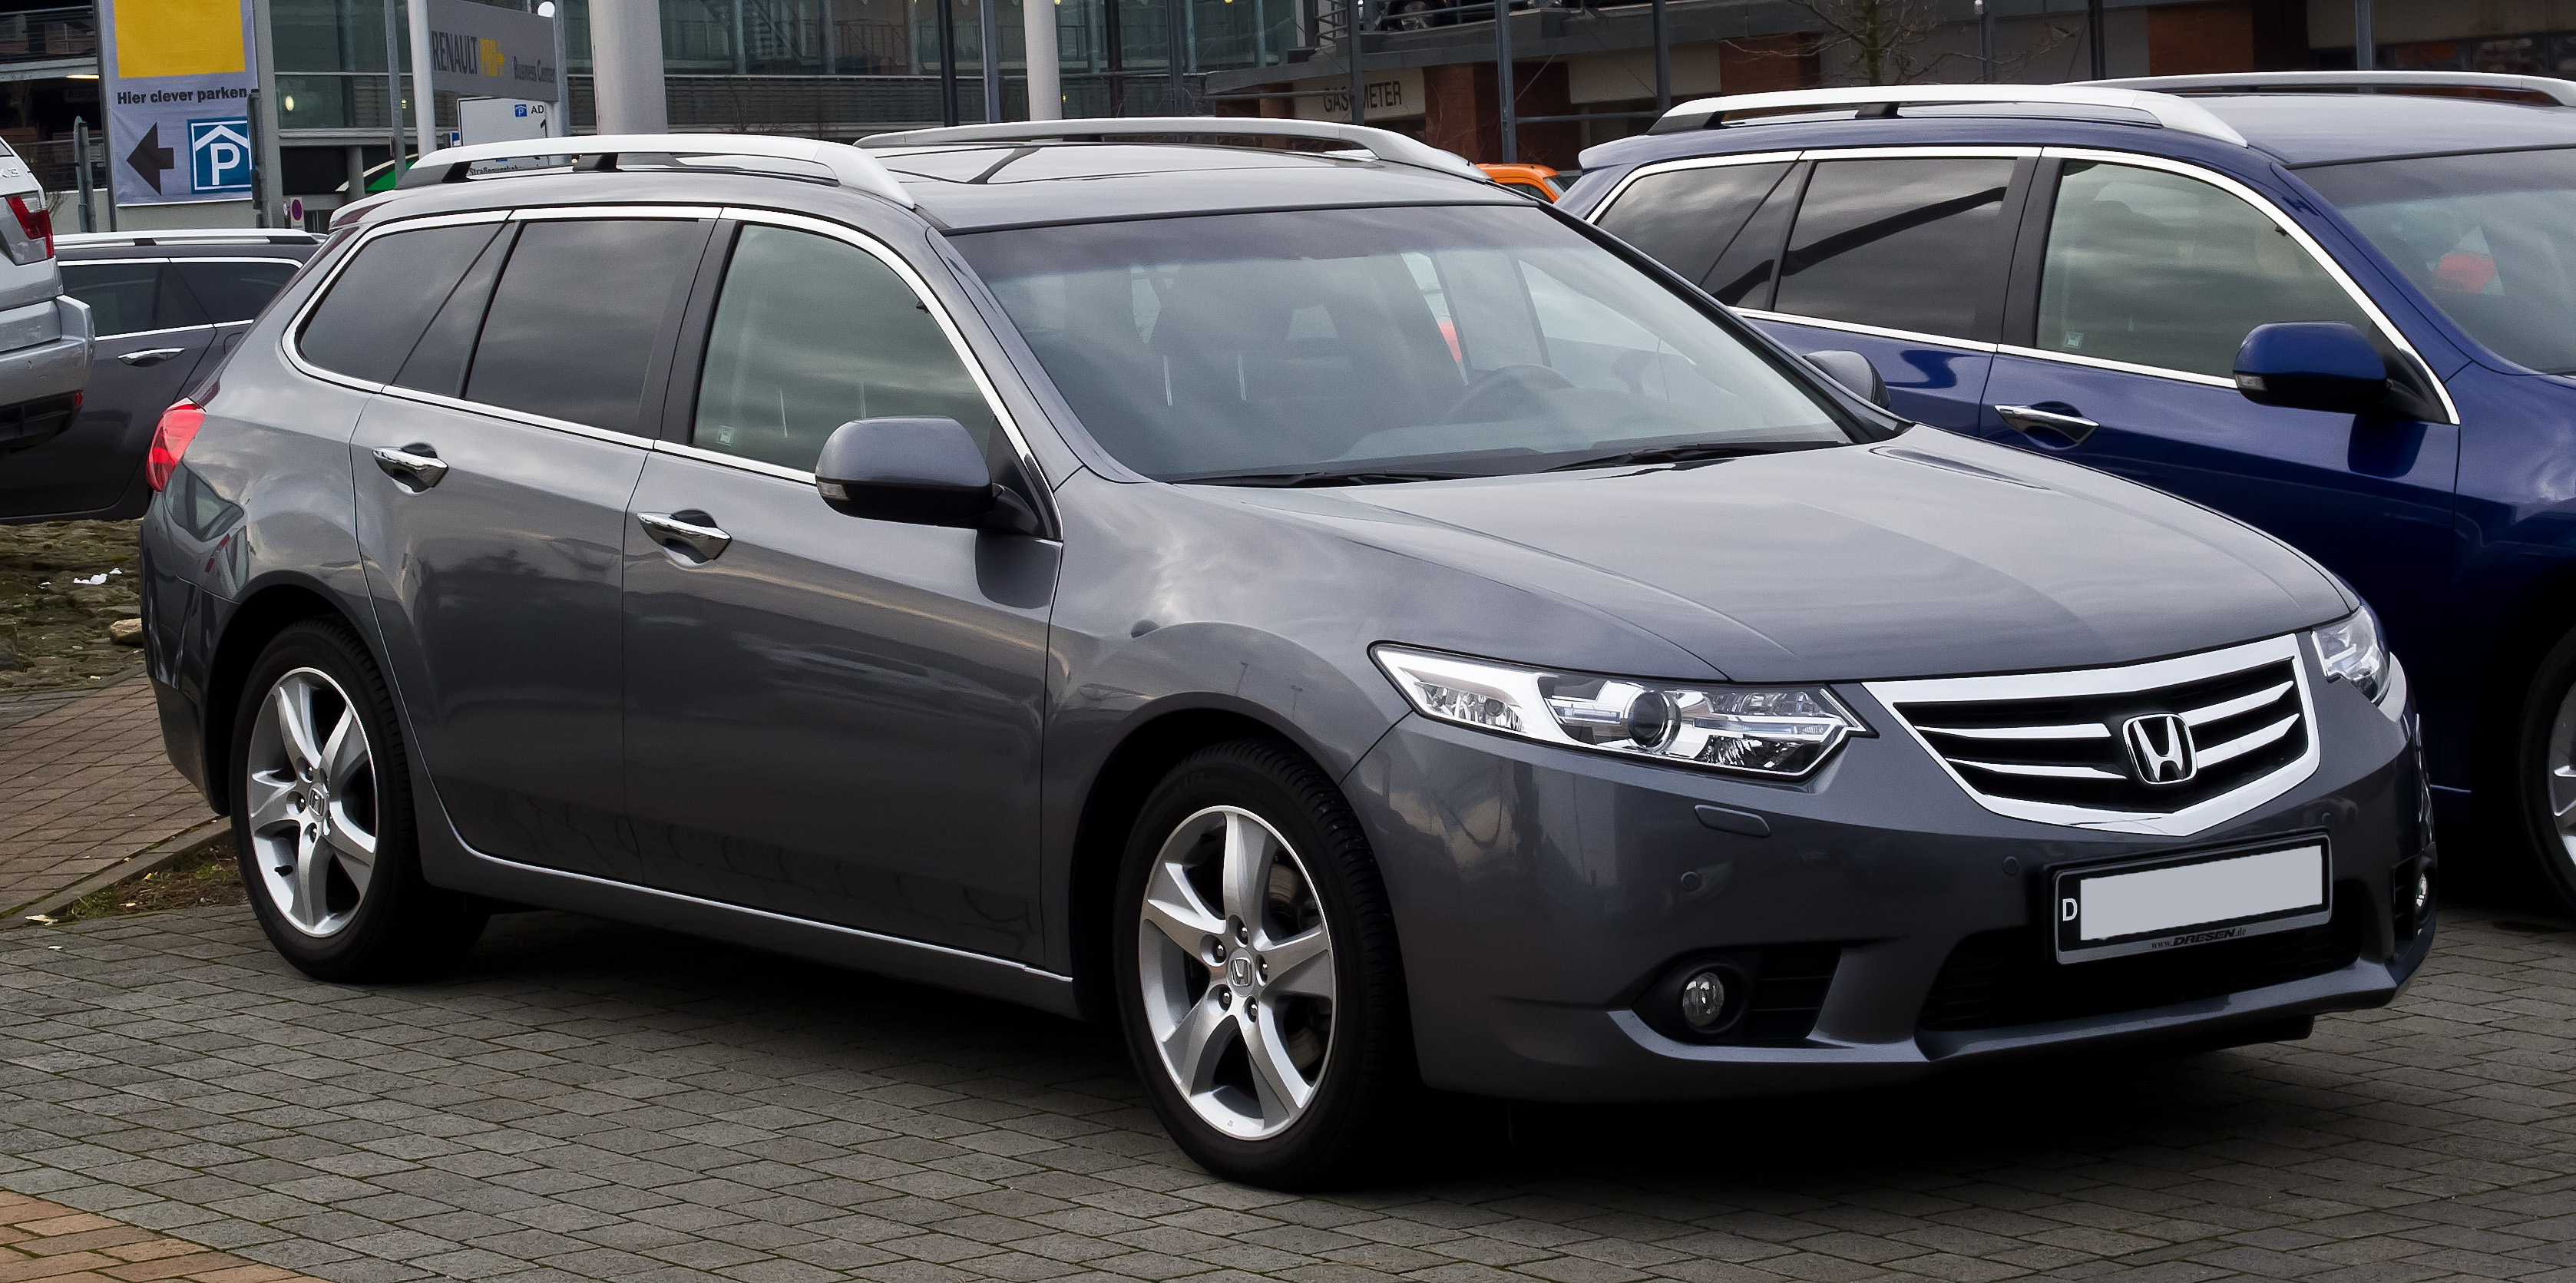 canadian all a announces newsdetails september s pricing with news manufacturer debut is set to honda the accord allnew on en canada nca at new markham dealerships sedan for suggested release